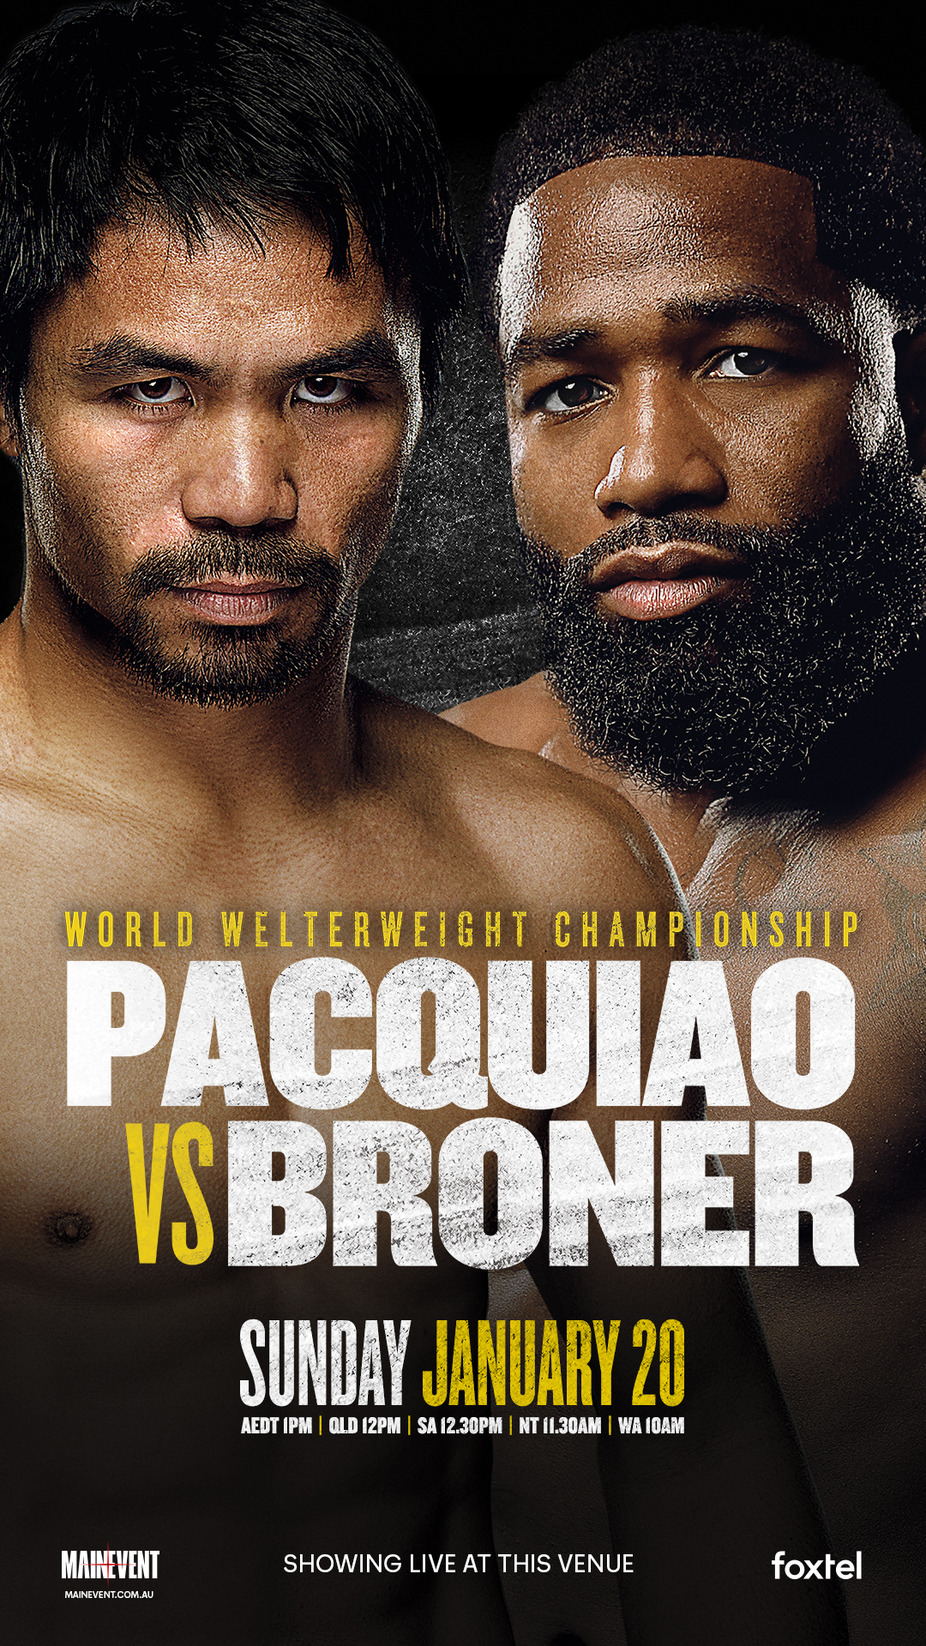 PACQUIAO VS. BRONER event photo